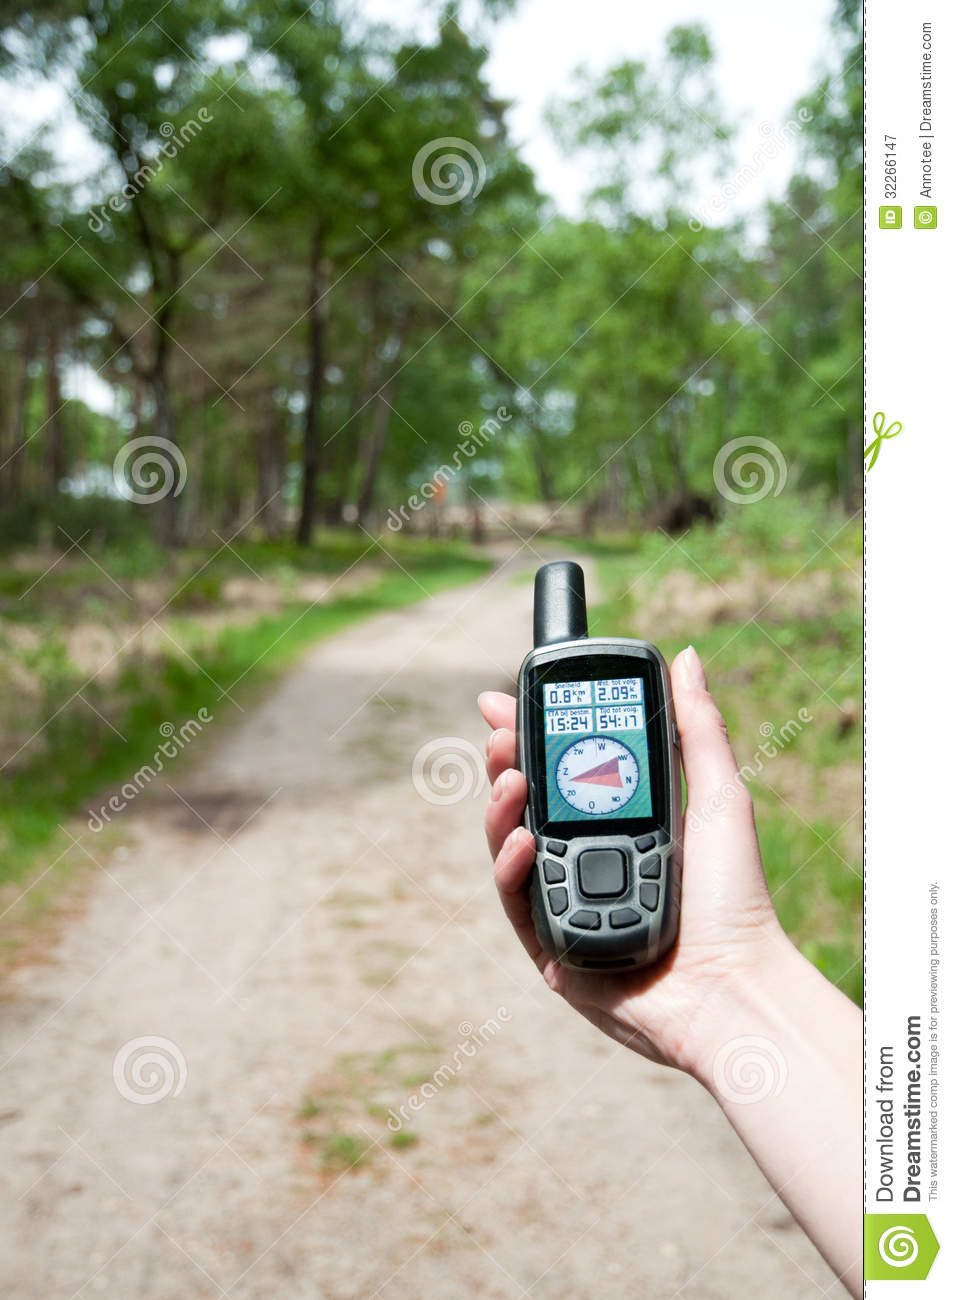 Gps hand held forest penetration